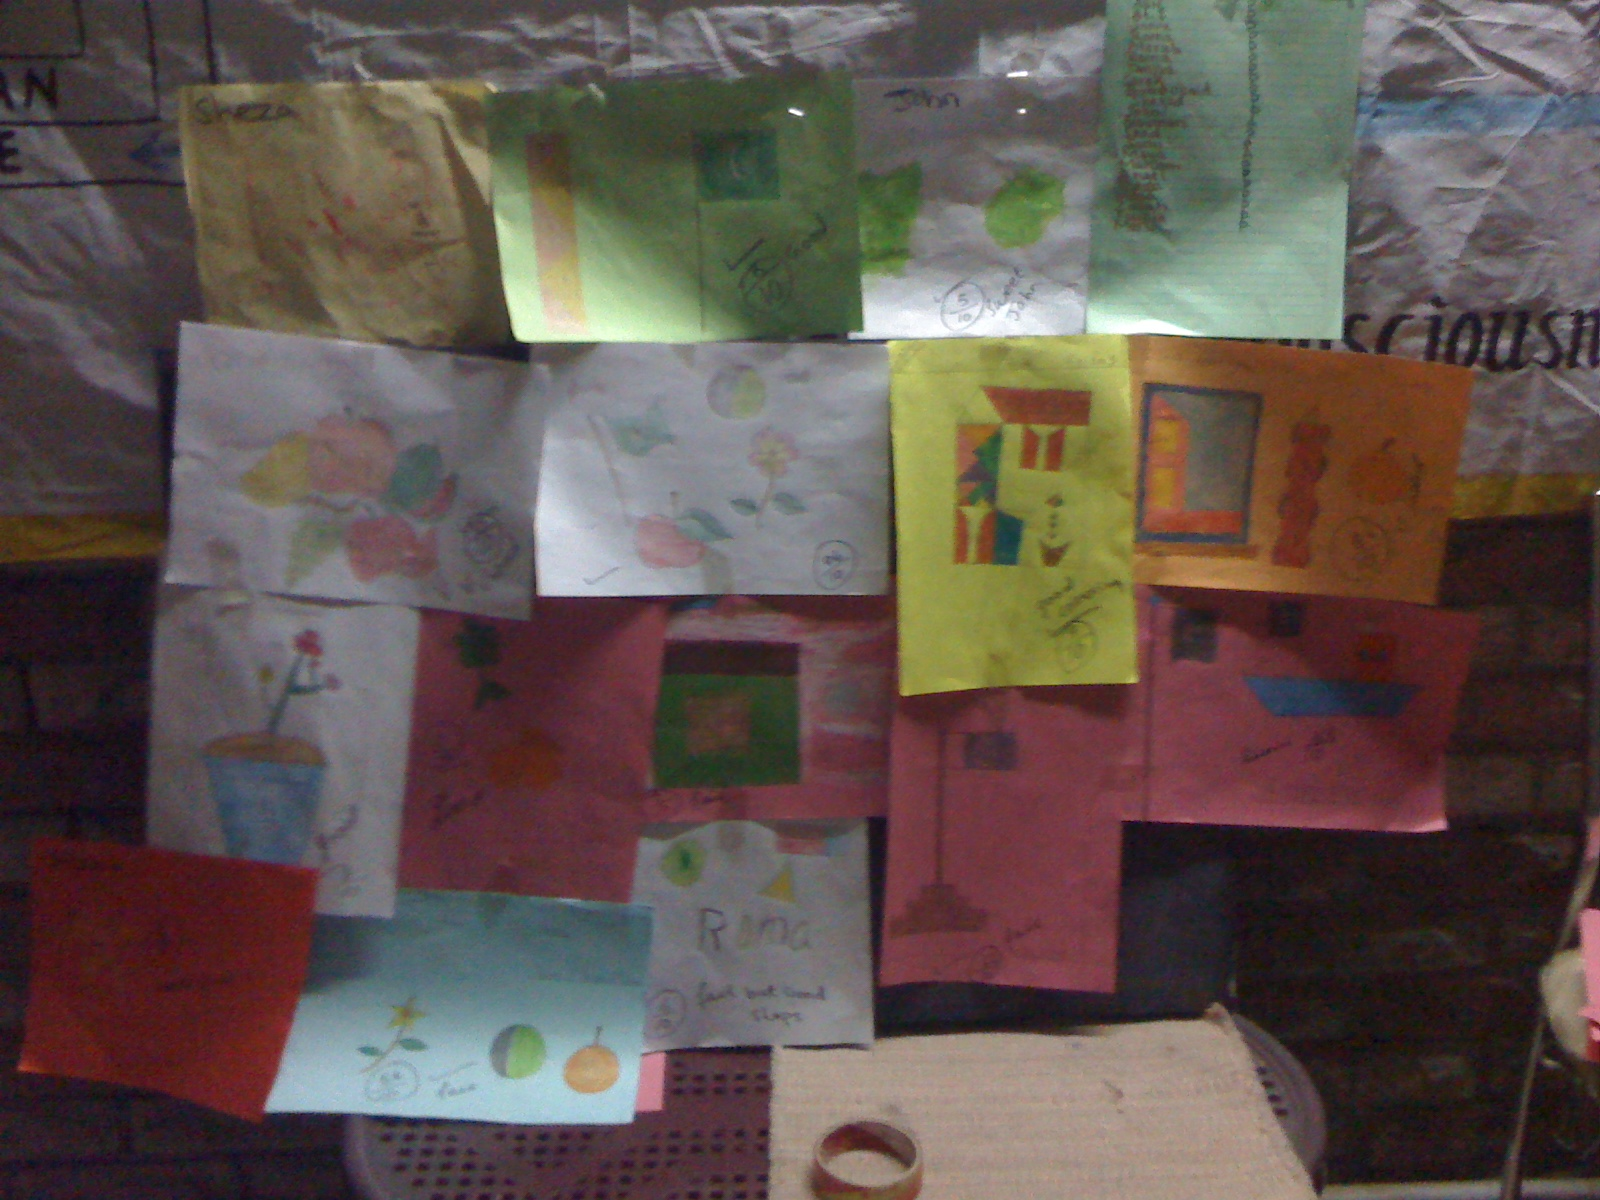 The students have finished a month of school and we have celebrated by posting their drawings throughout the classroom